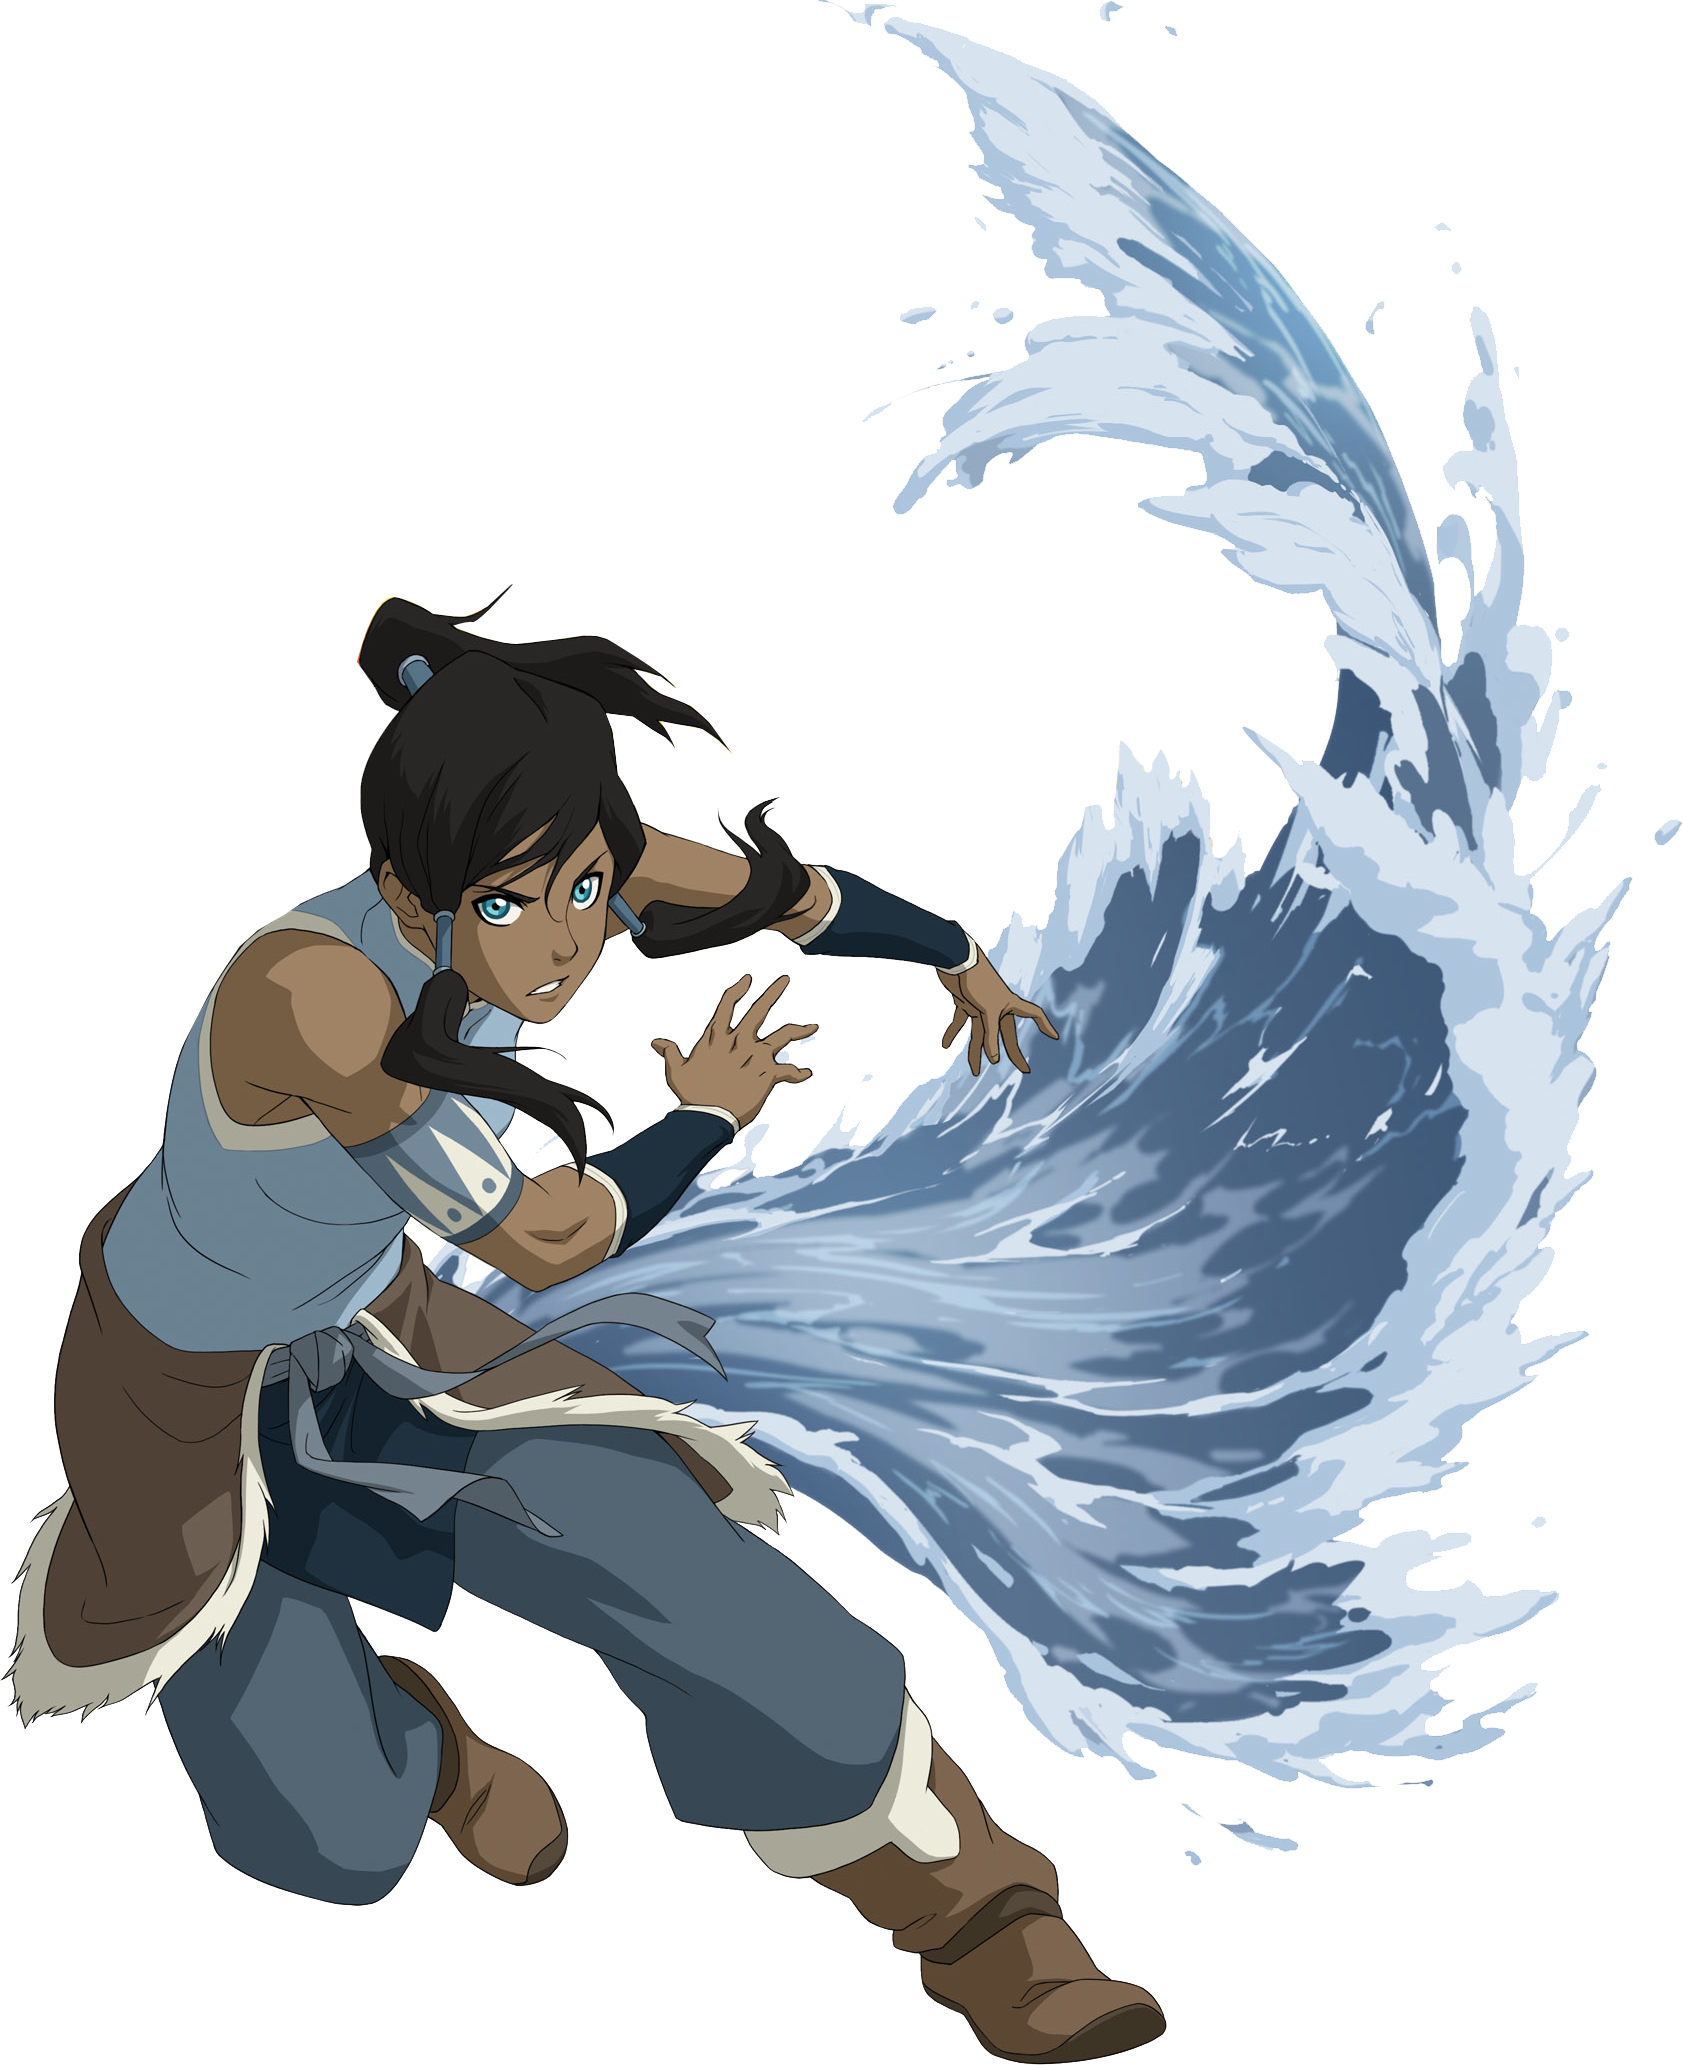 korra drawing avatar the last airbender